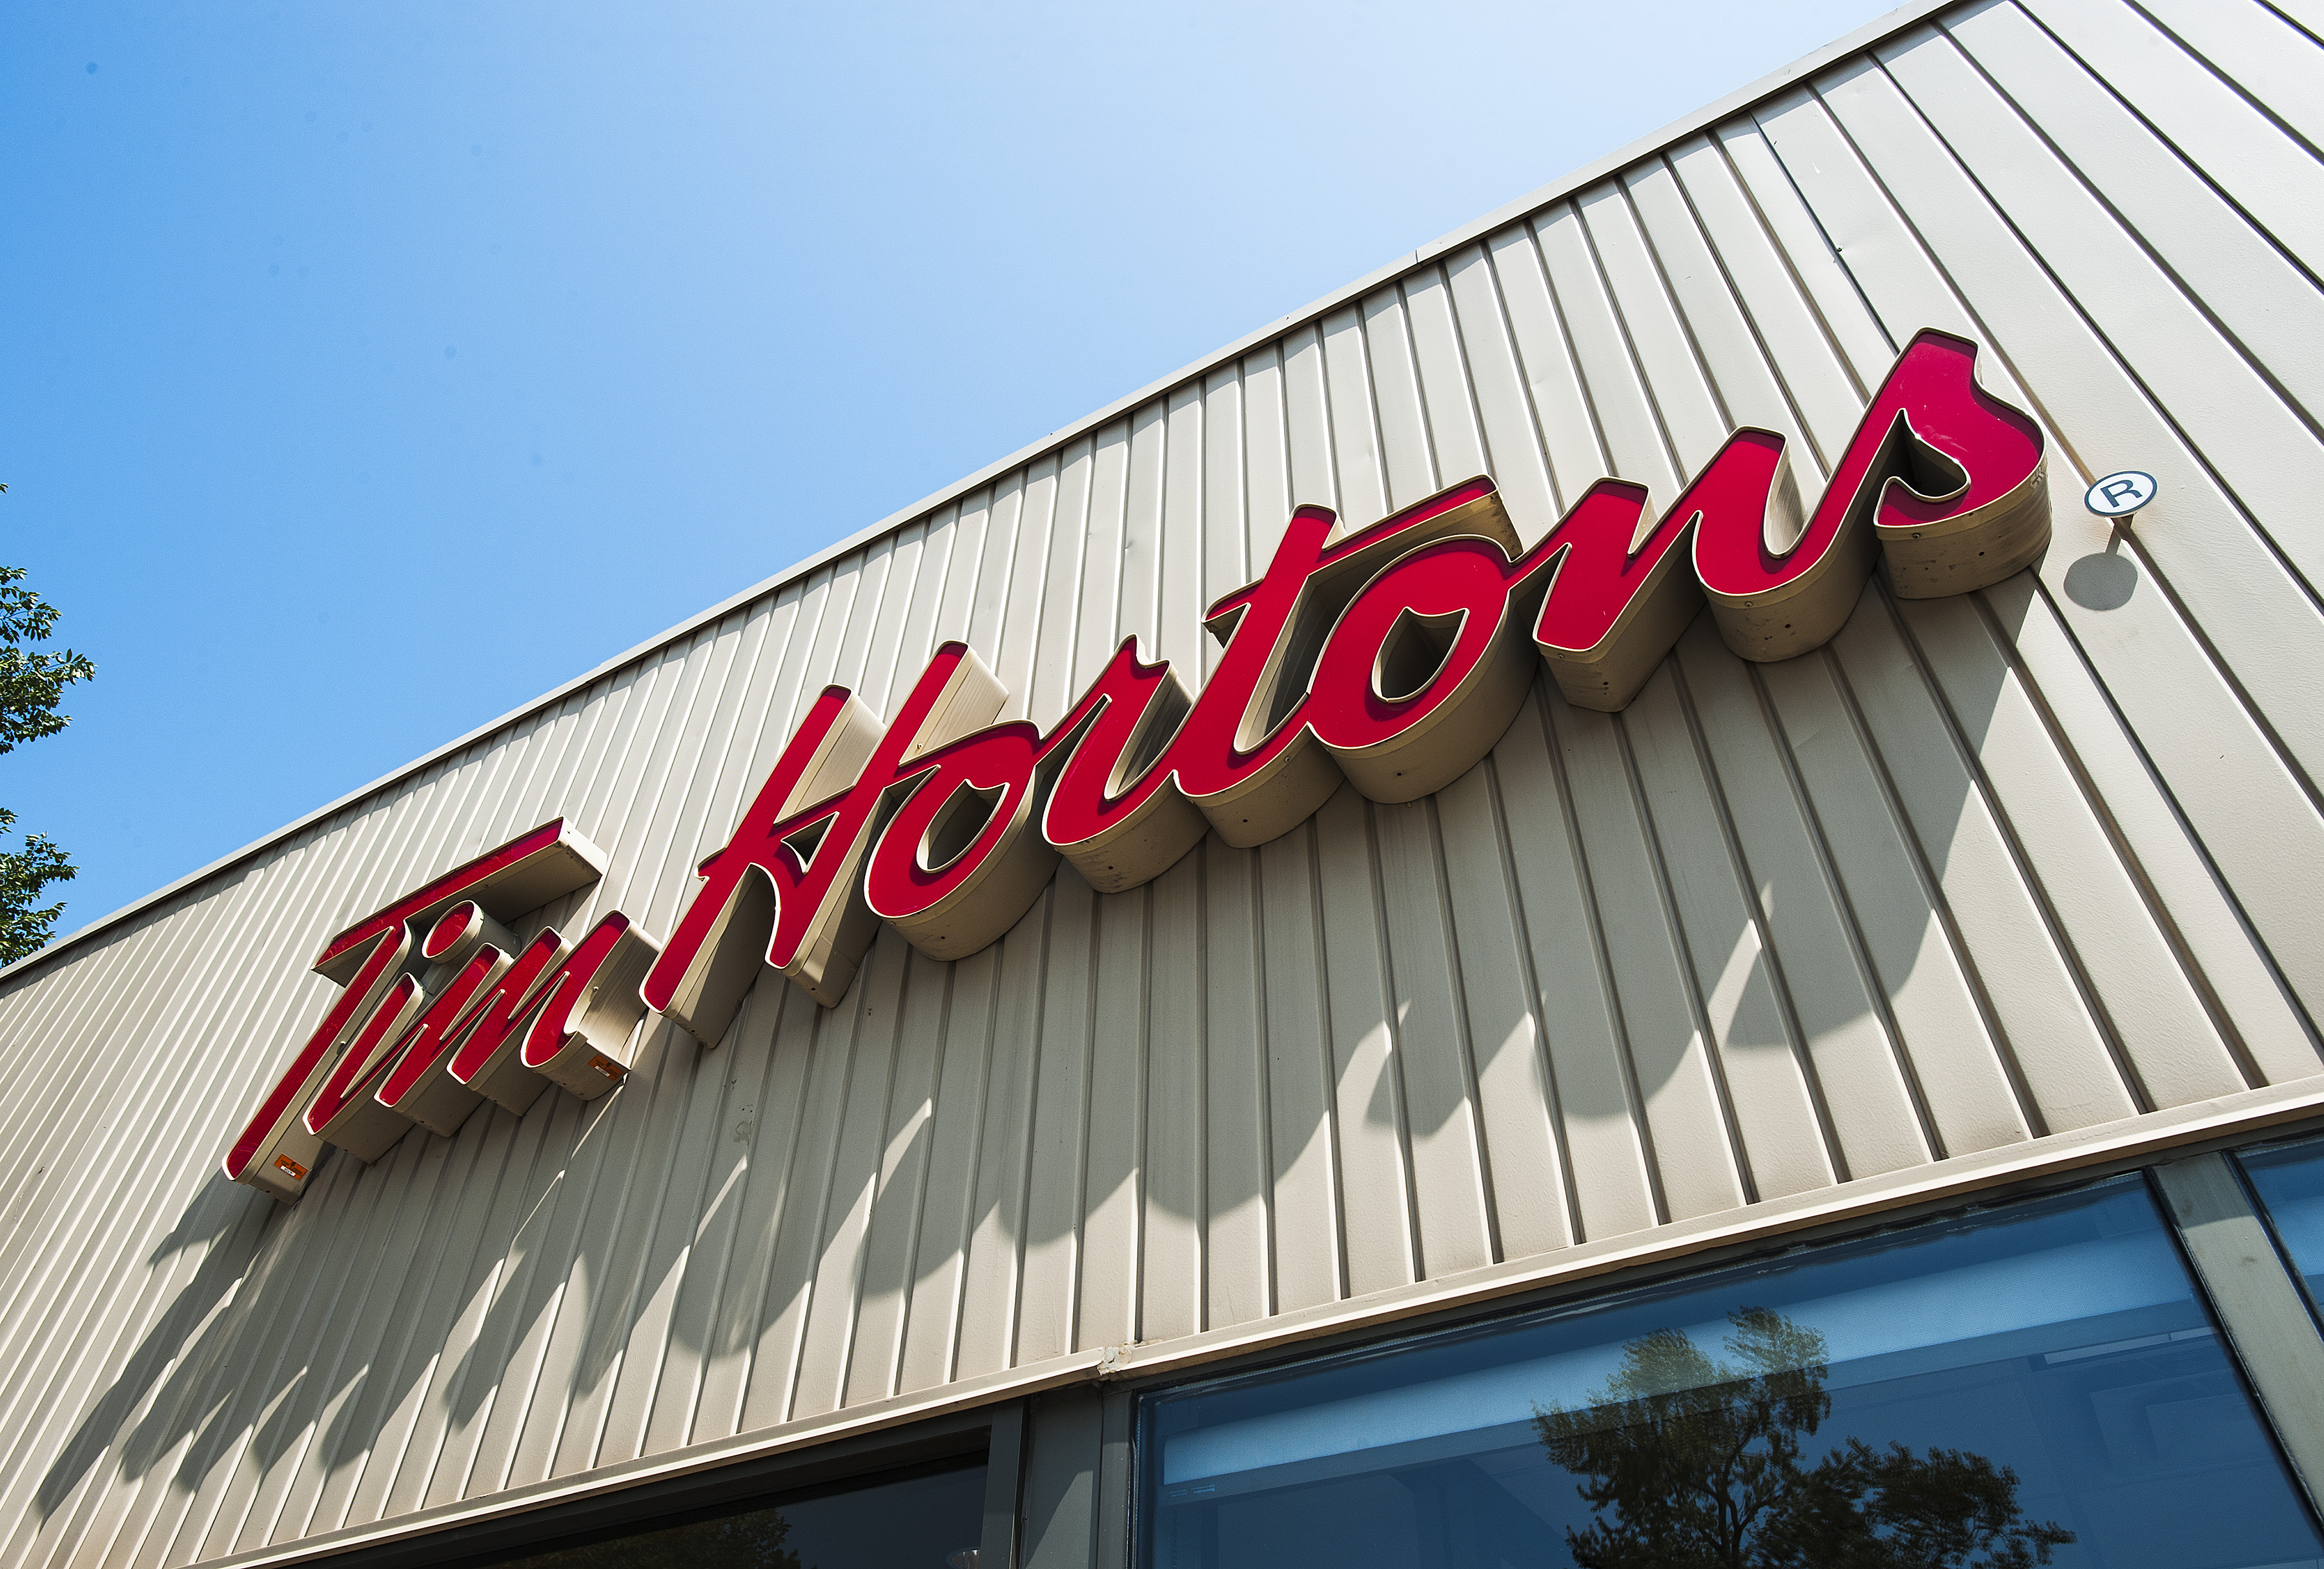 Tim Hortons Closes Locations in New York and Maine Without Informing Staff, Customers